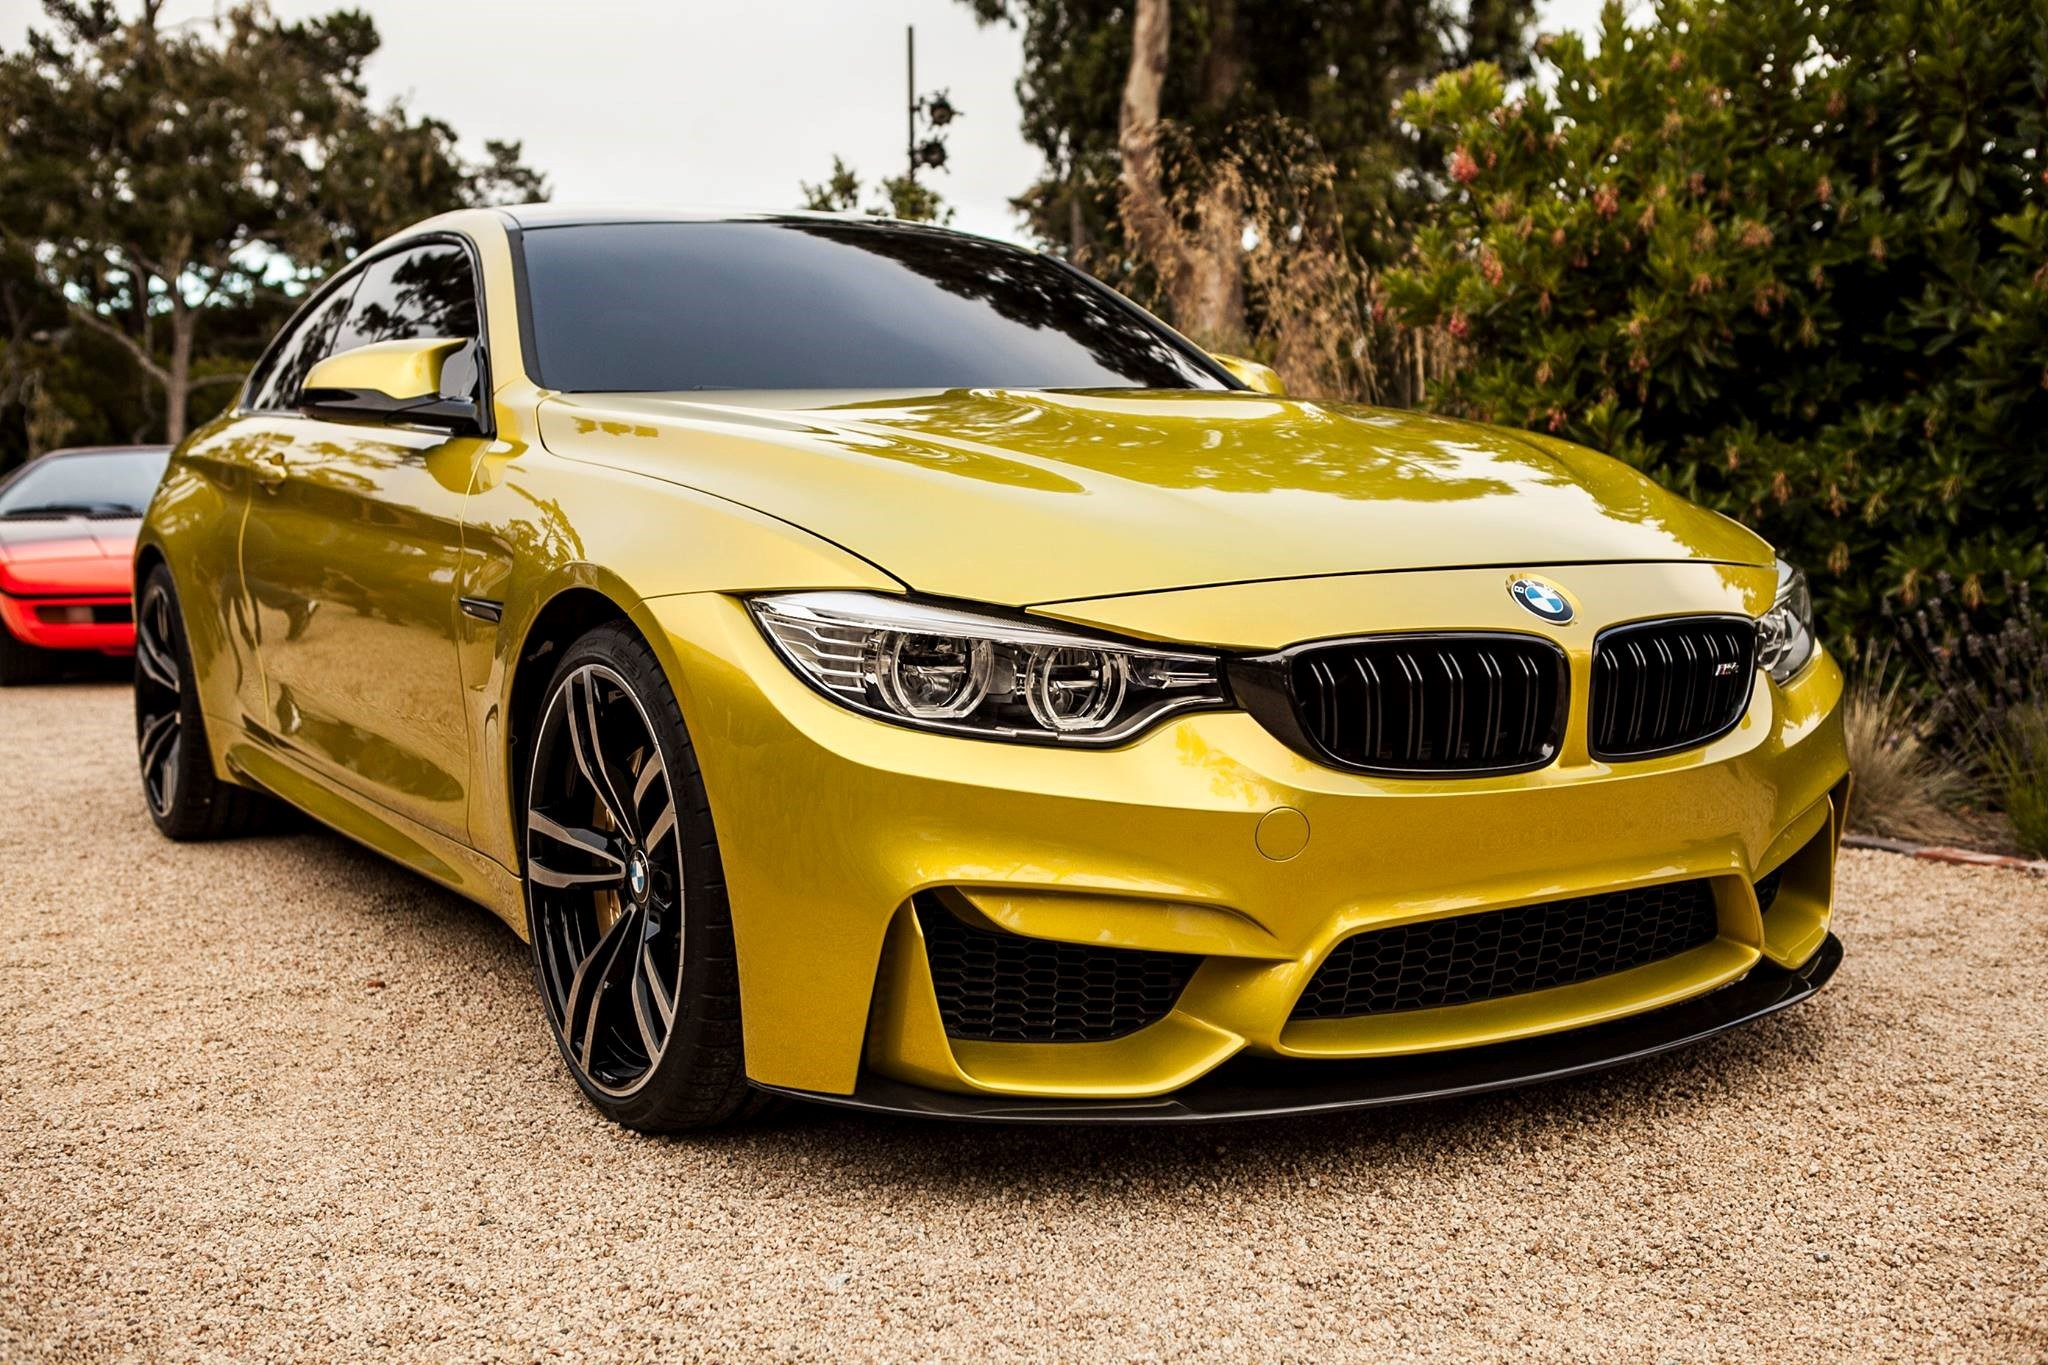 Bmw cars wallpapers 2014 hd – | Beautiful Wallpapers | Pinterest | Bmw cars  and Wallpaper